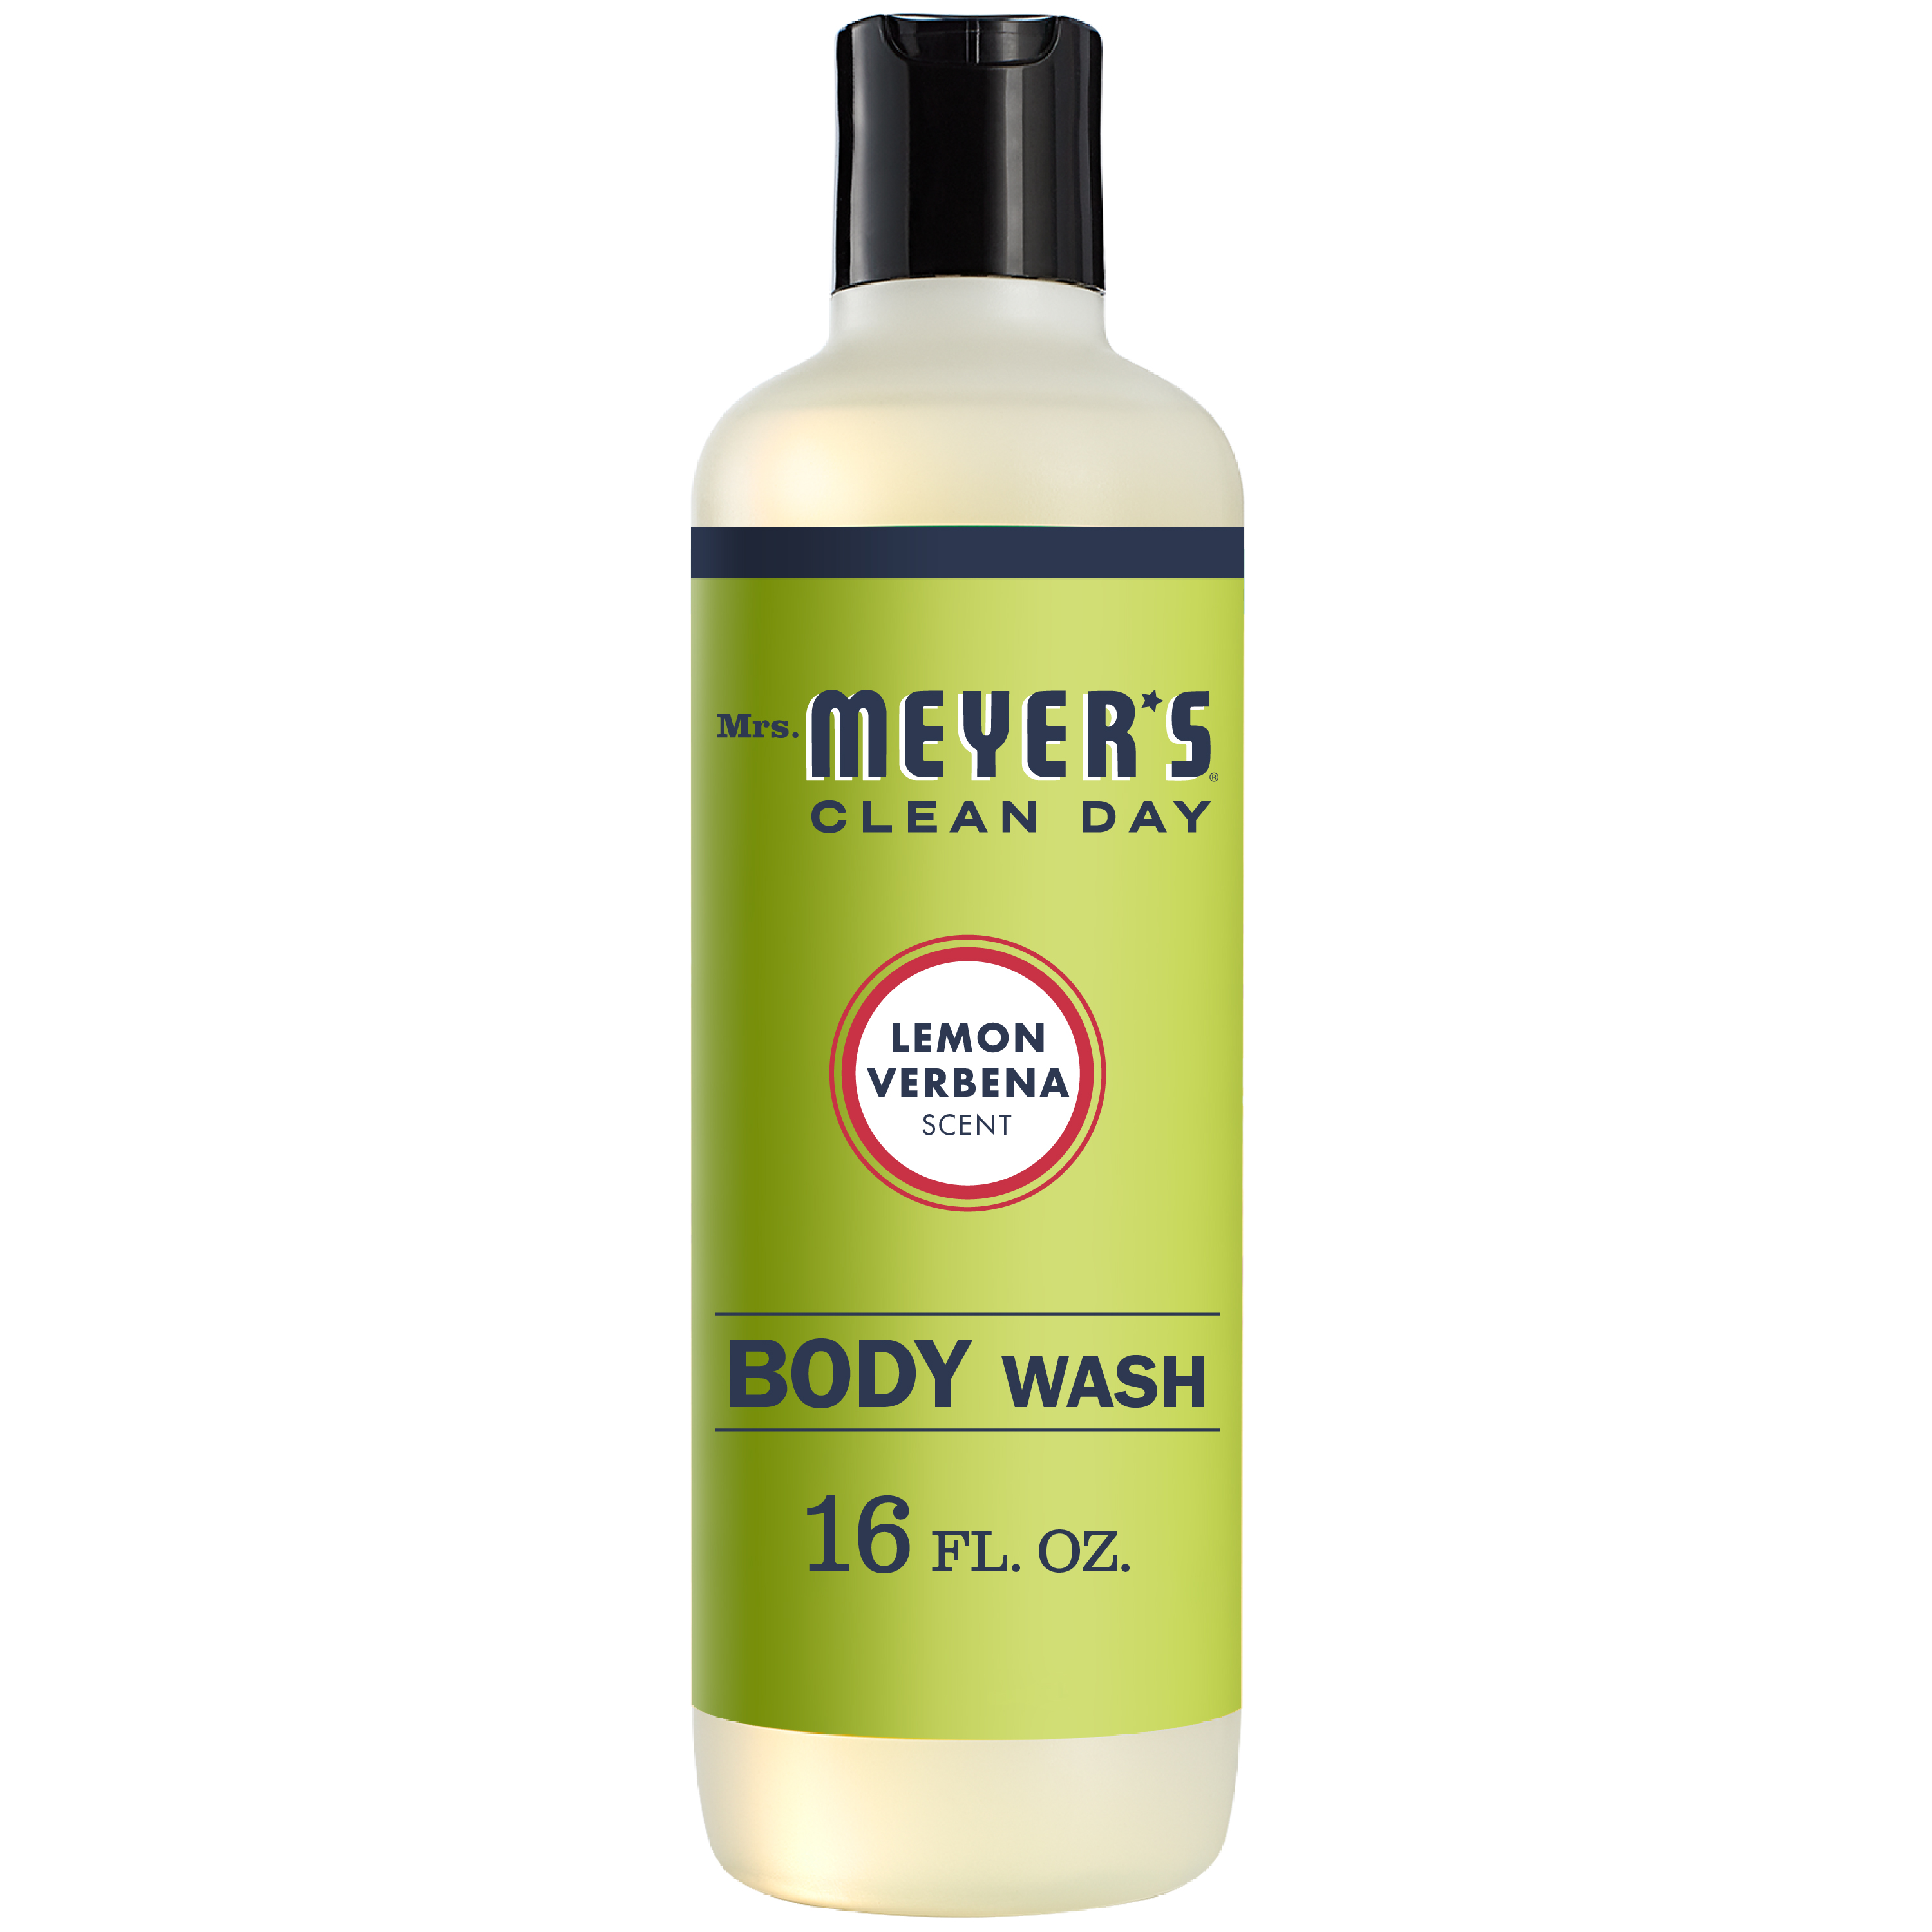 Mrs. Meyer's Clean Day Body Wash, Lemon Verbena Scent, 16 ounce bottle